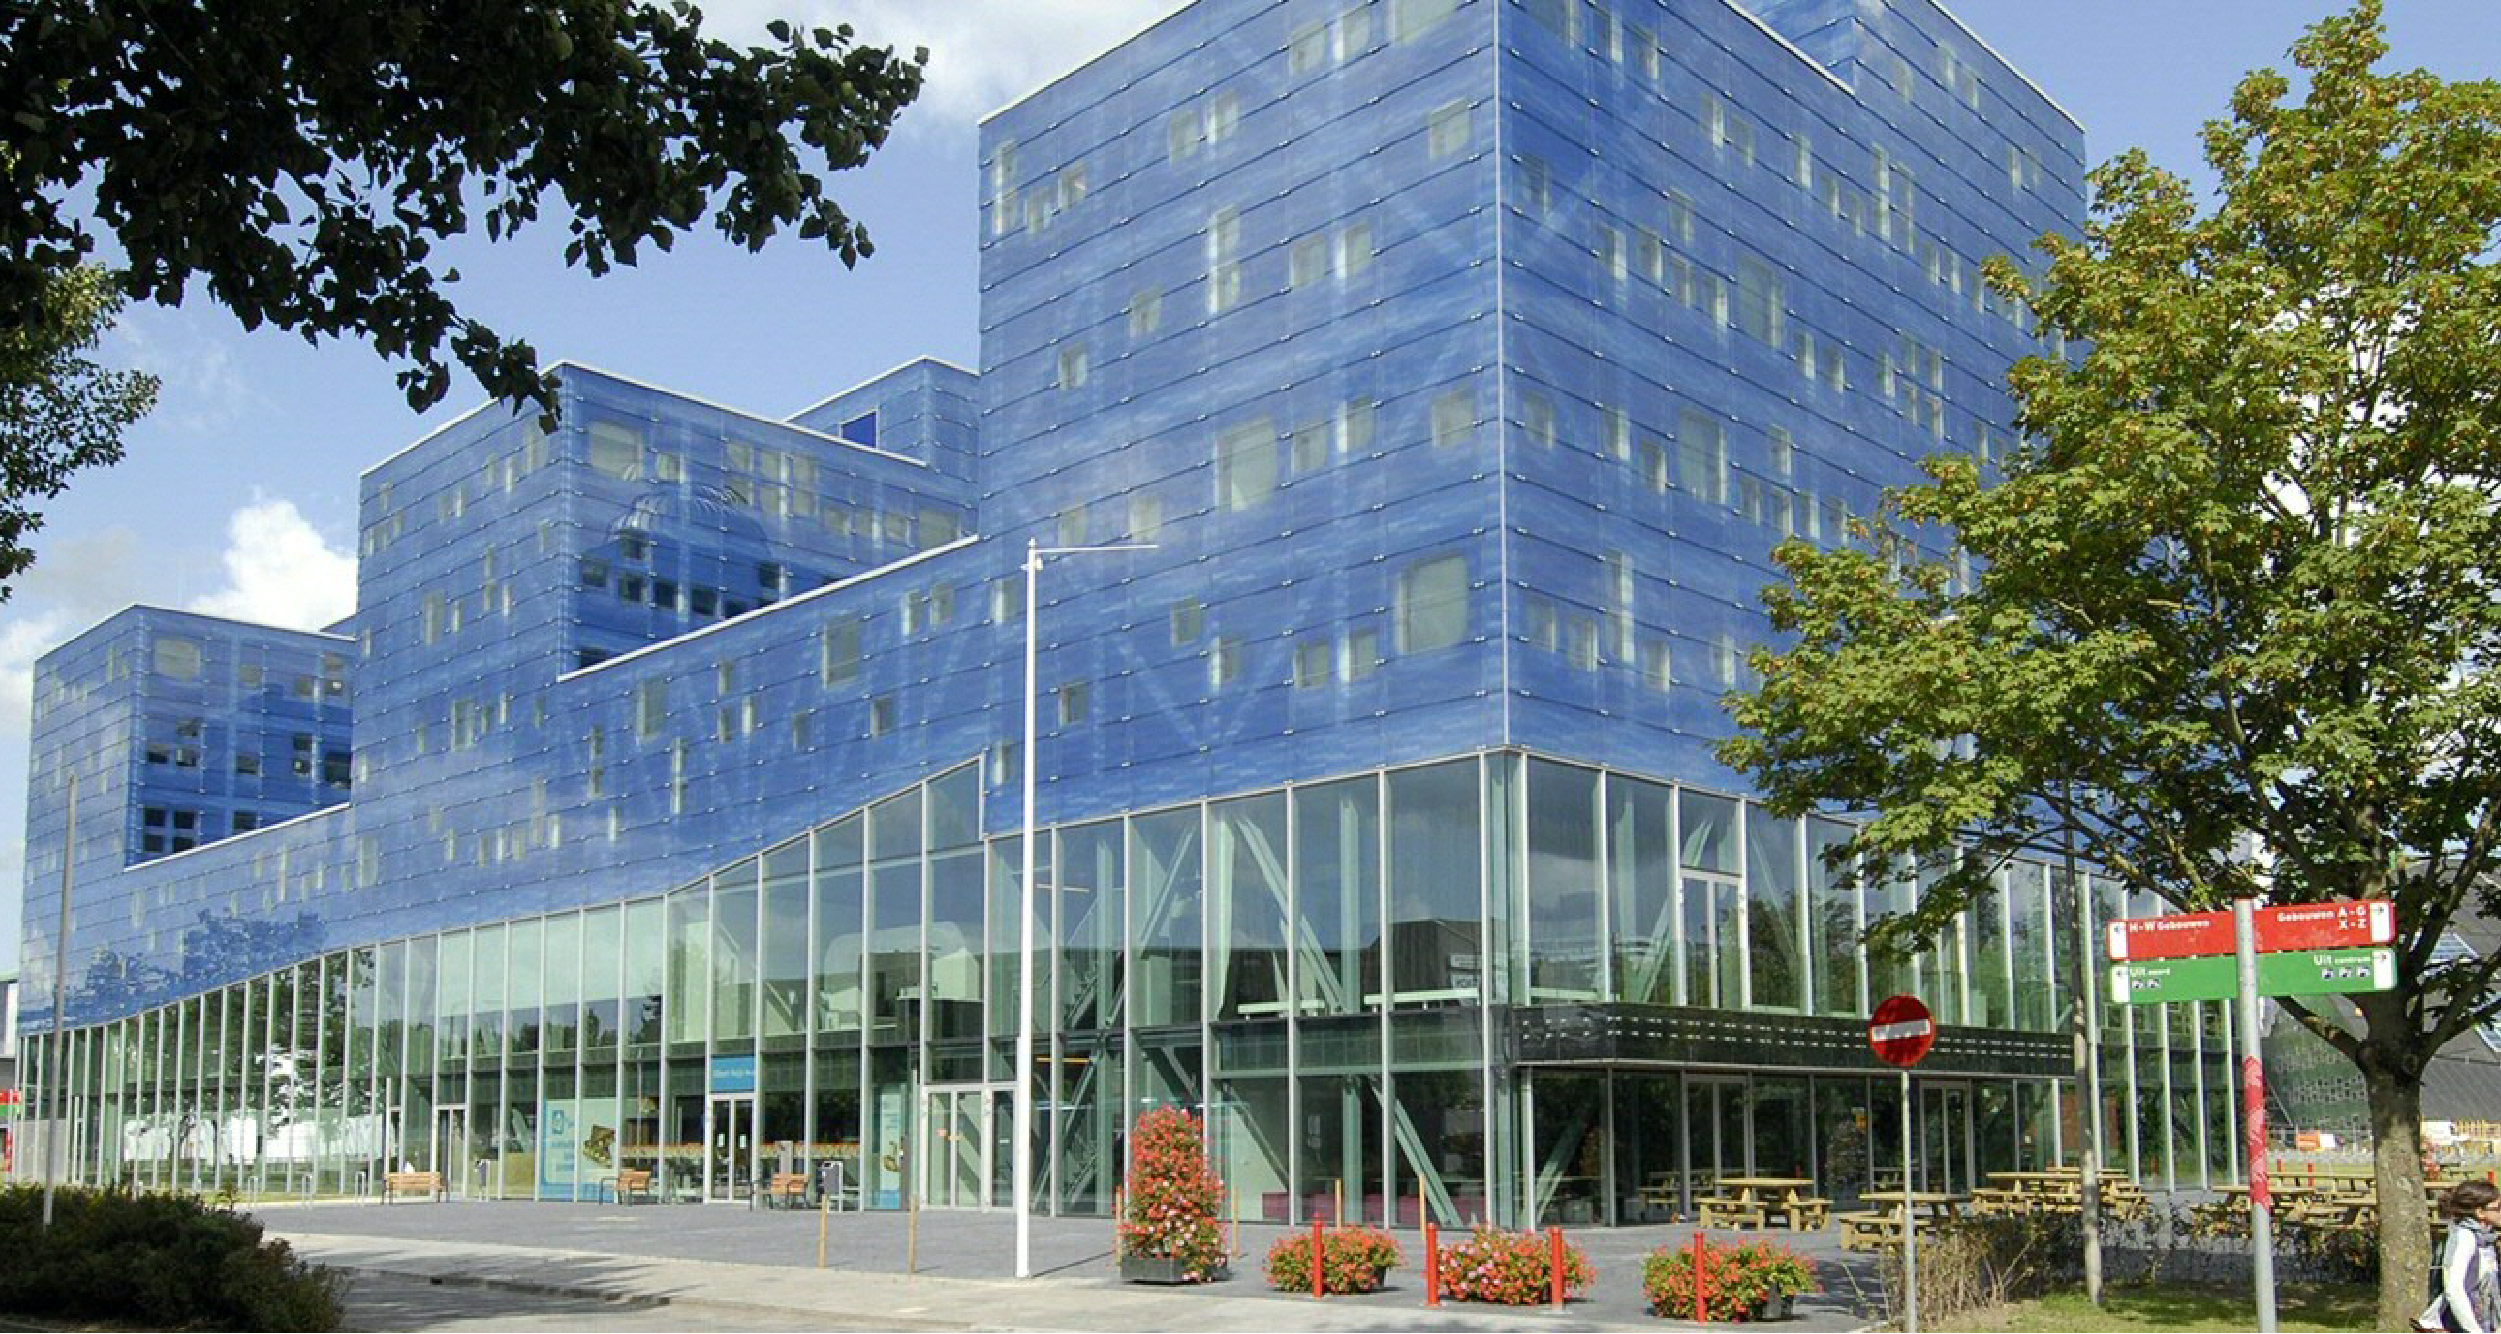 Bernoulli Institute for Mathematics, Computer Science and Artificial Intelligence